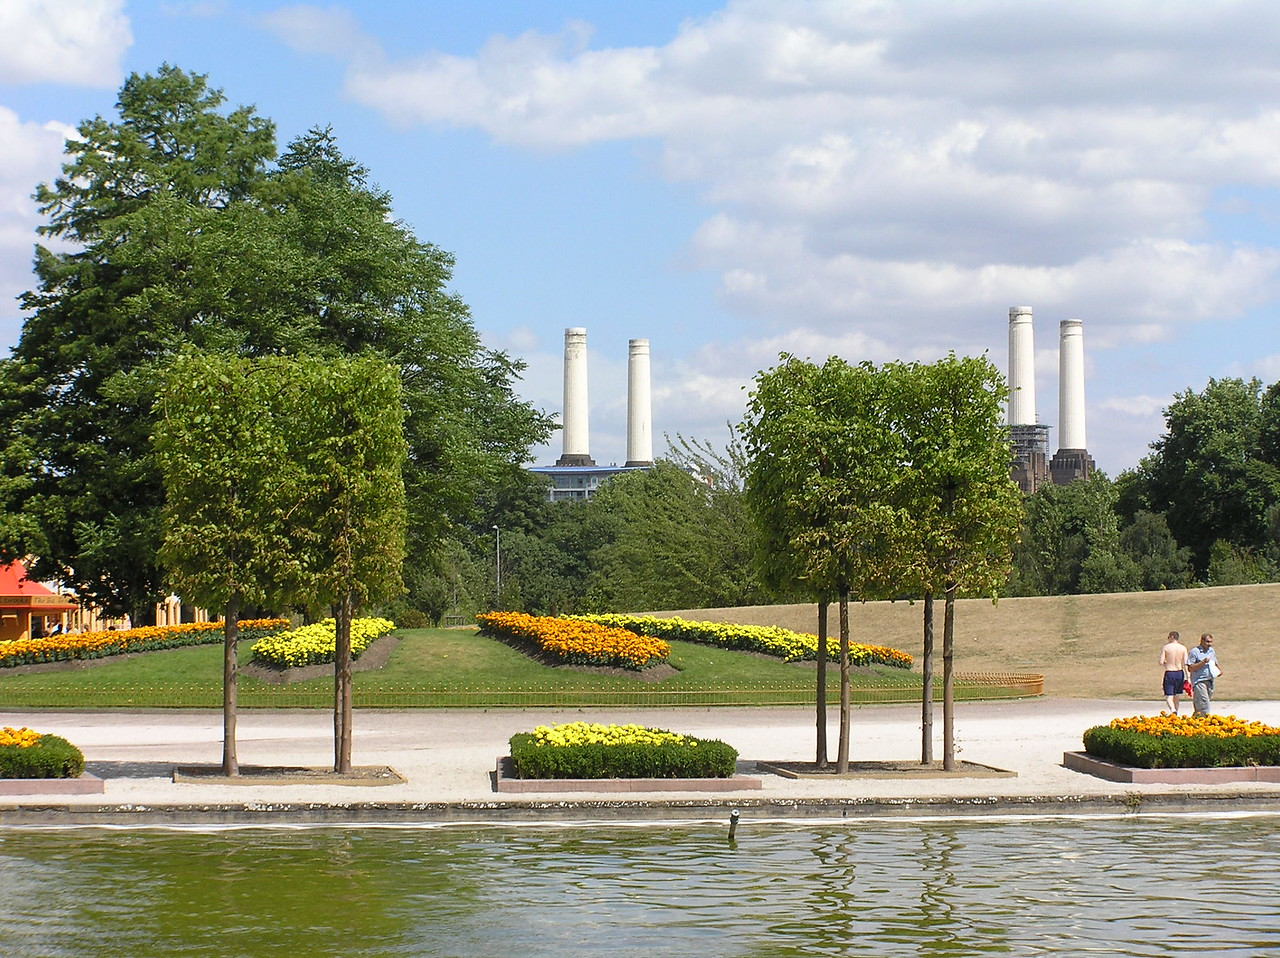 The popular bicycle scene from The Great Muppet Caper was filmed in Battersea Park. Battersea Power Station can be seen in the background.